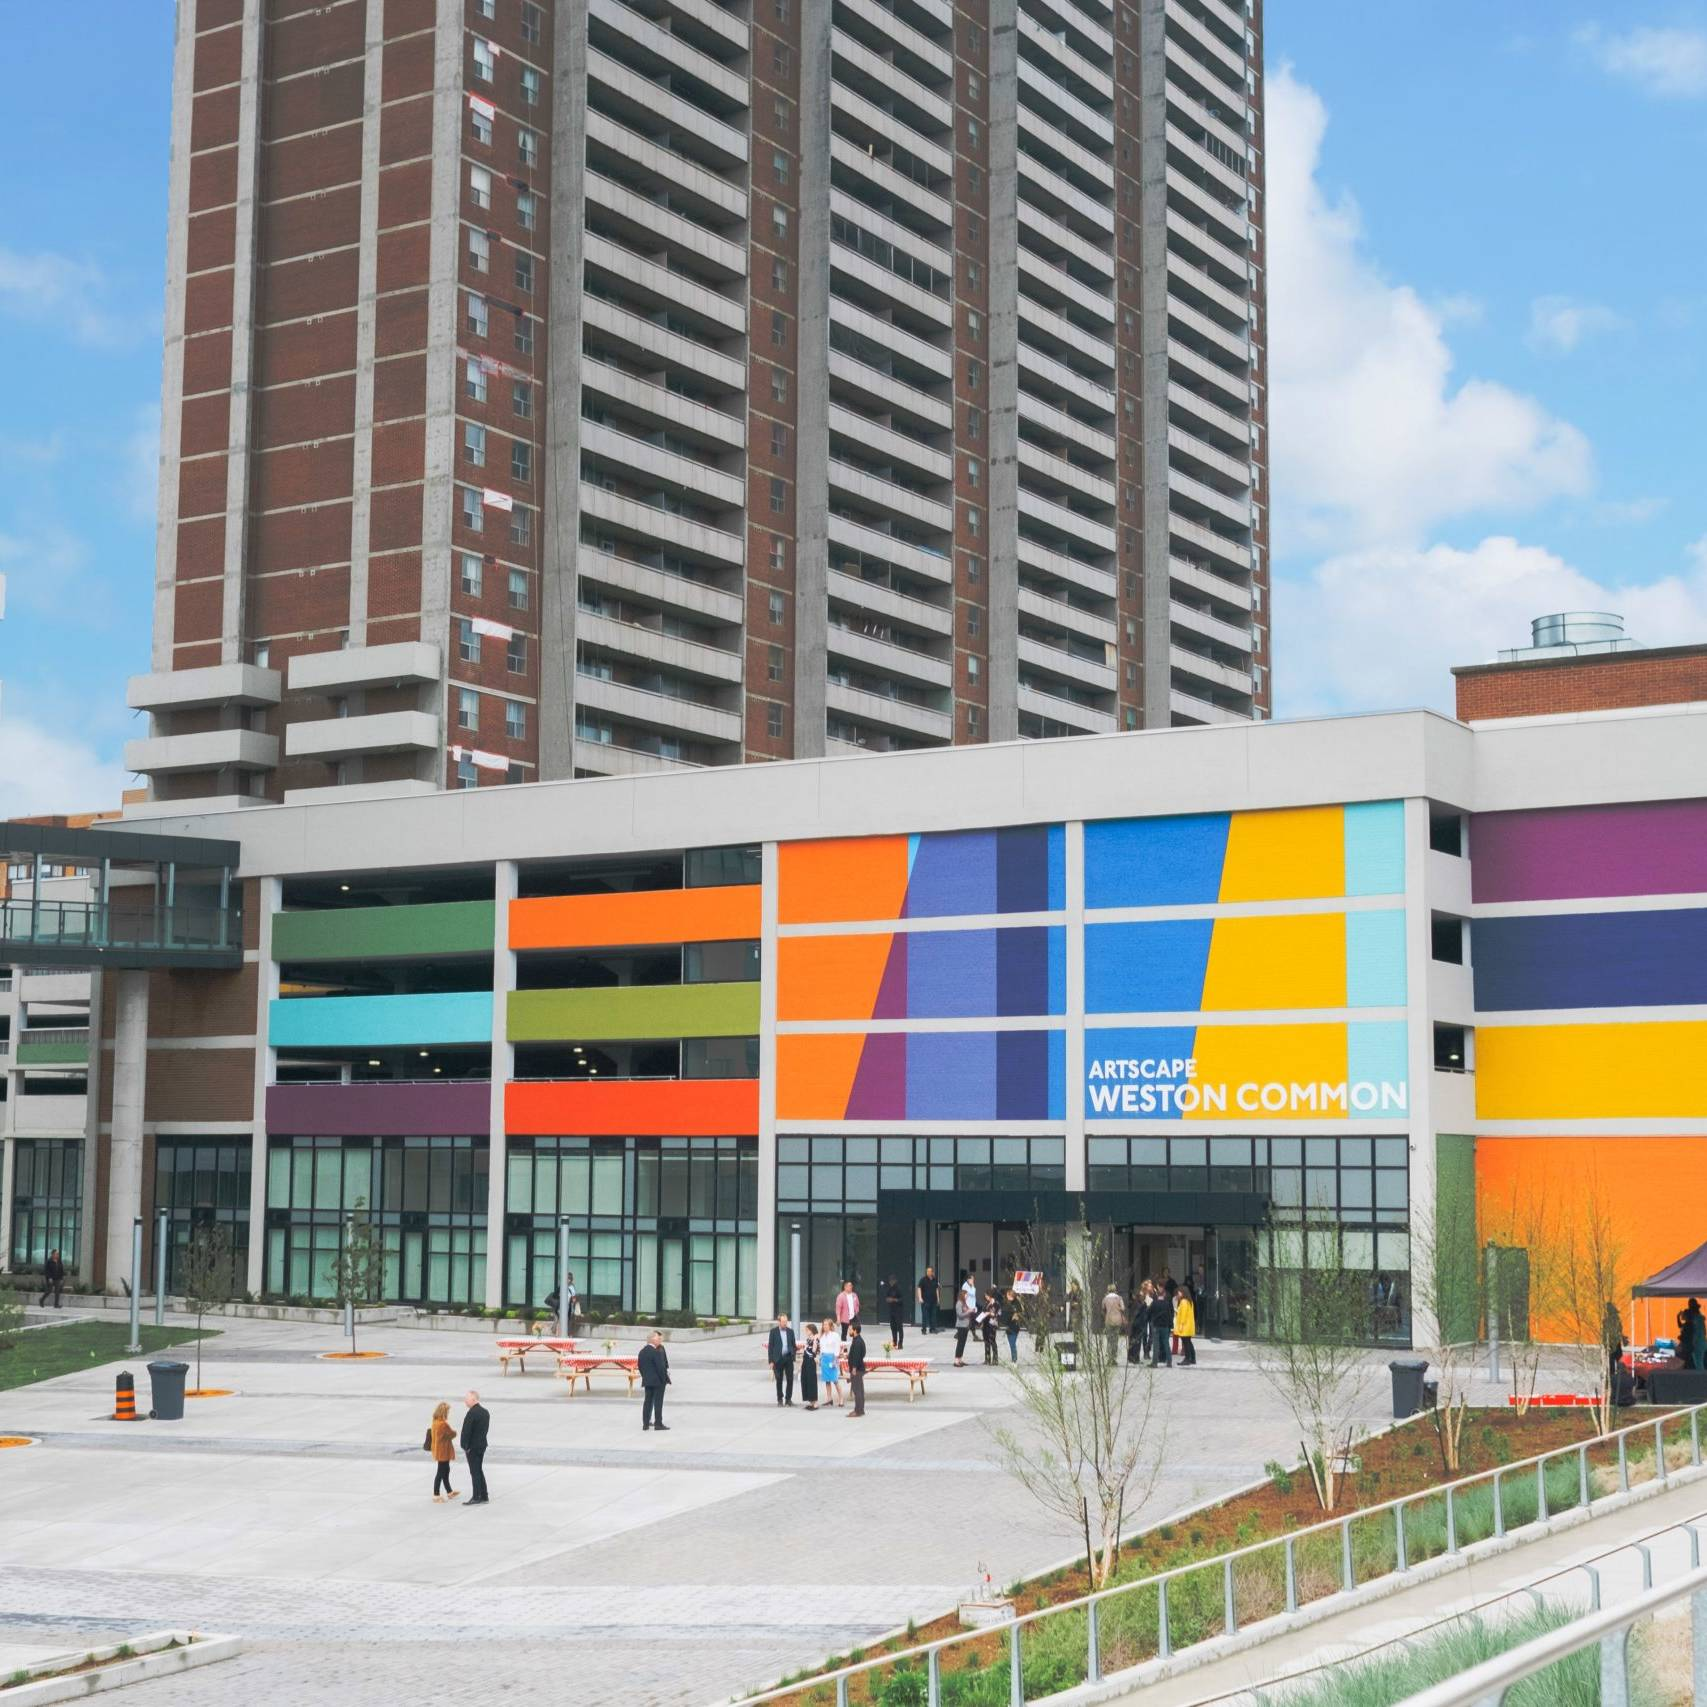 Exterior of Artscape Weston Common with people gathered